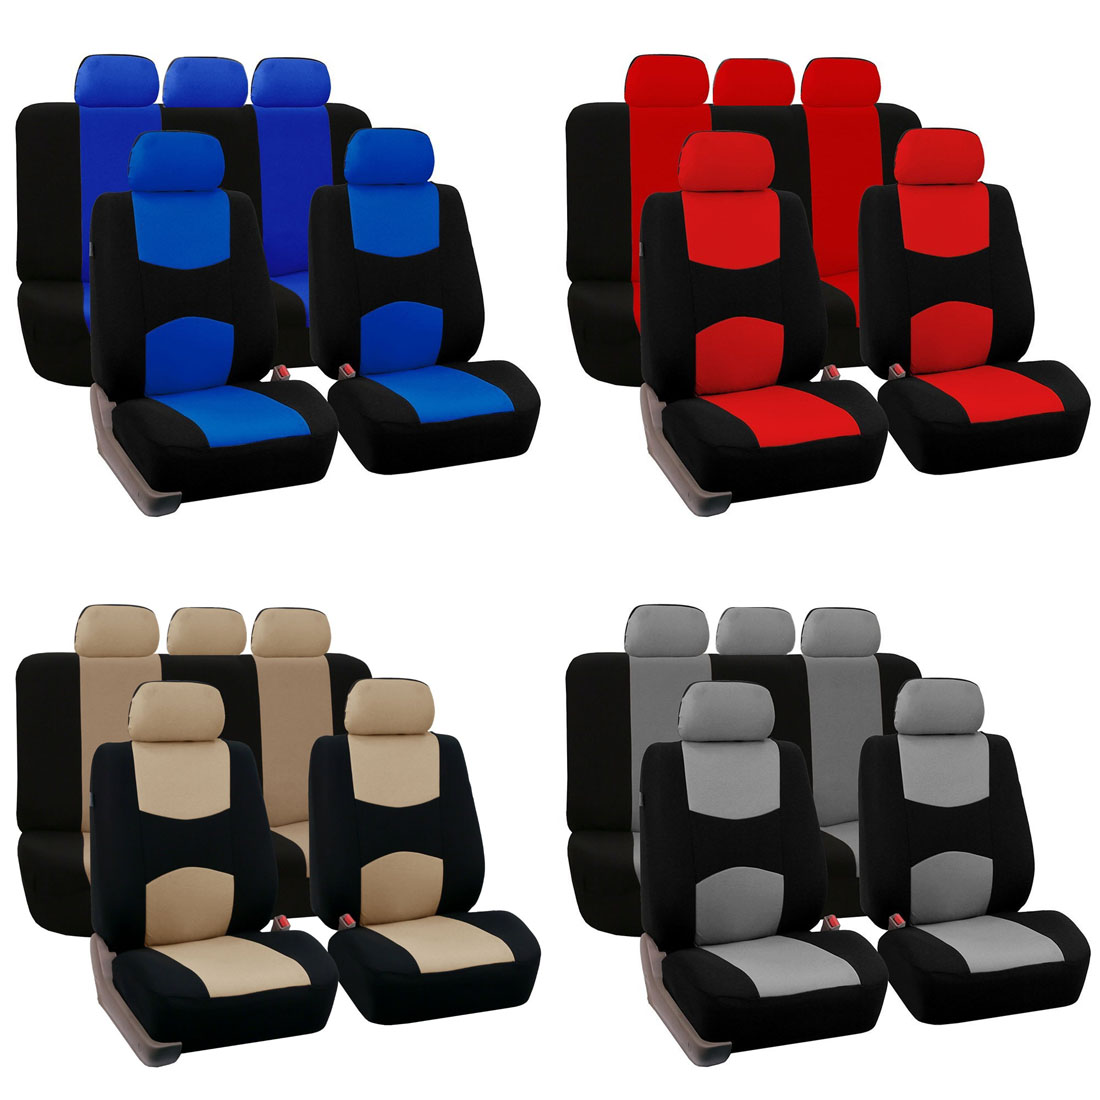 Dewtreetali Car Styling Full Set Car Seat Covers Universal Fit Car Seat Protectors Auto Interior Accessories Car Decoration dewtreetali universal automoblies seat cover four seaons car seat protector full set car accessories car styling for vw bmw audi